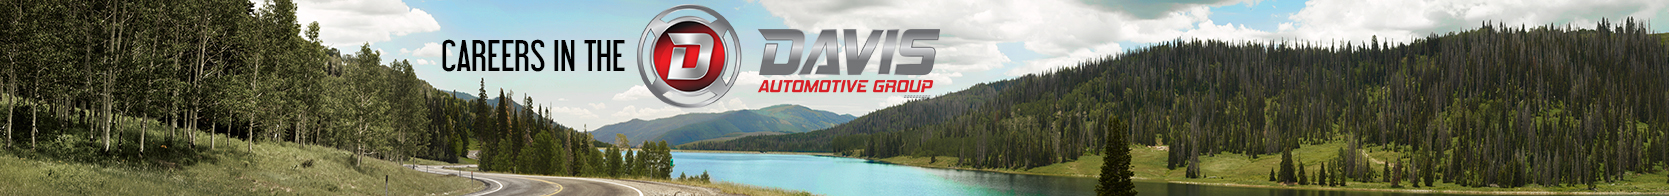 Careers at Davis Automotive Group